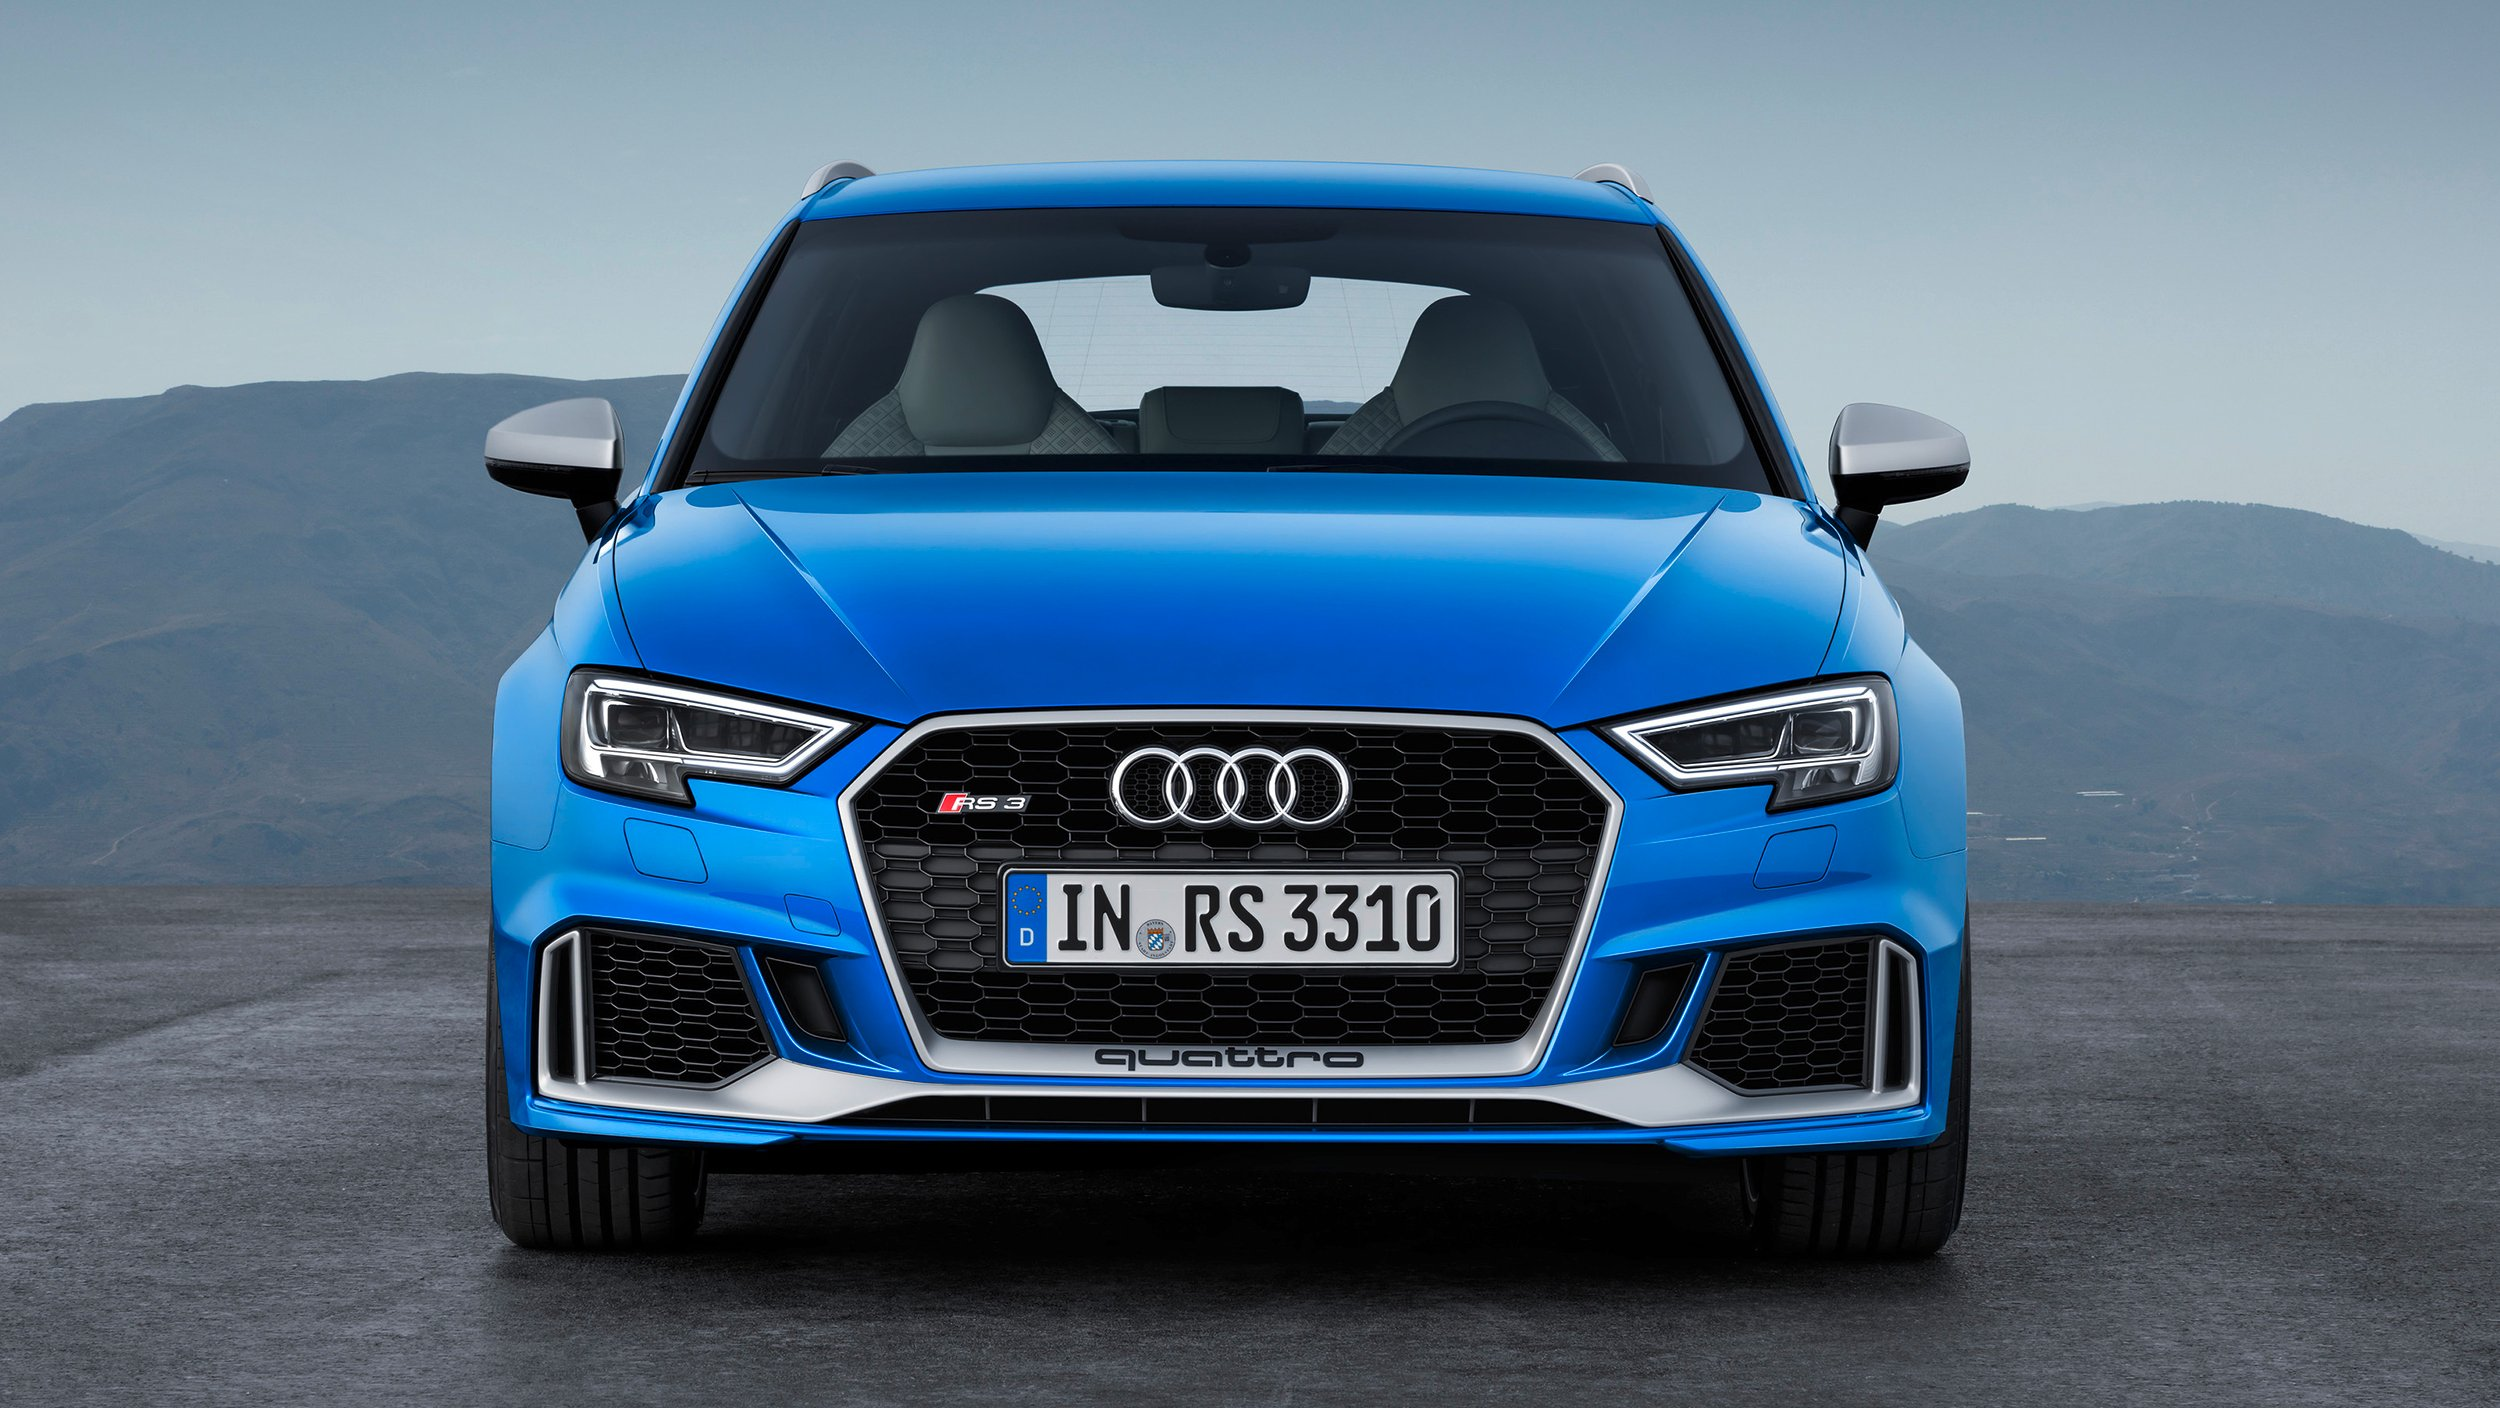 2018 Audi Rs3 Sportback Faster Lighter More Powerful